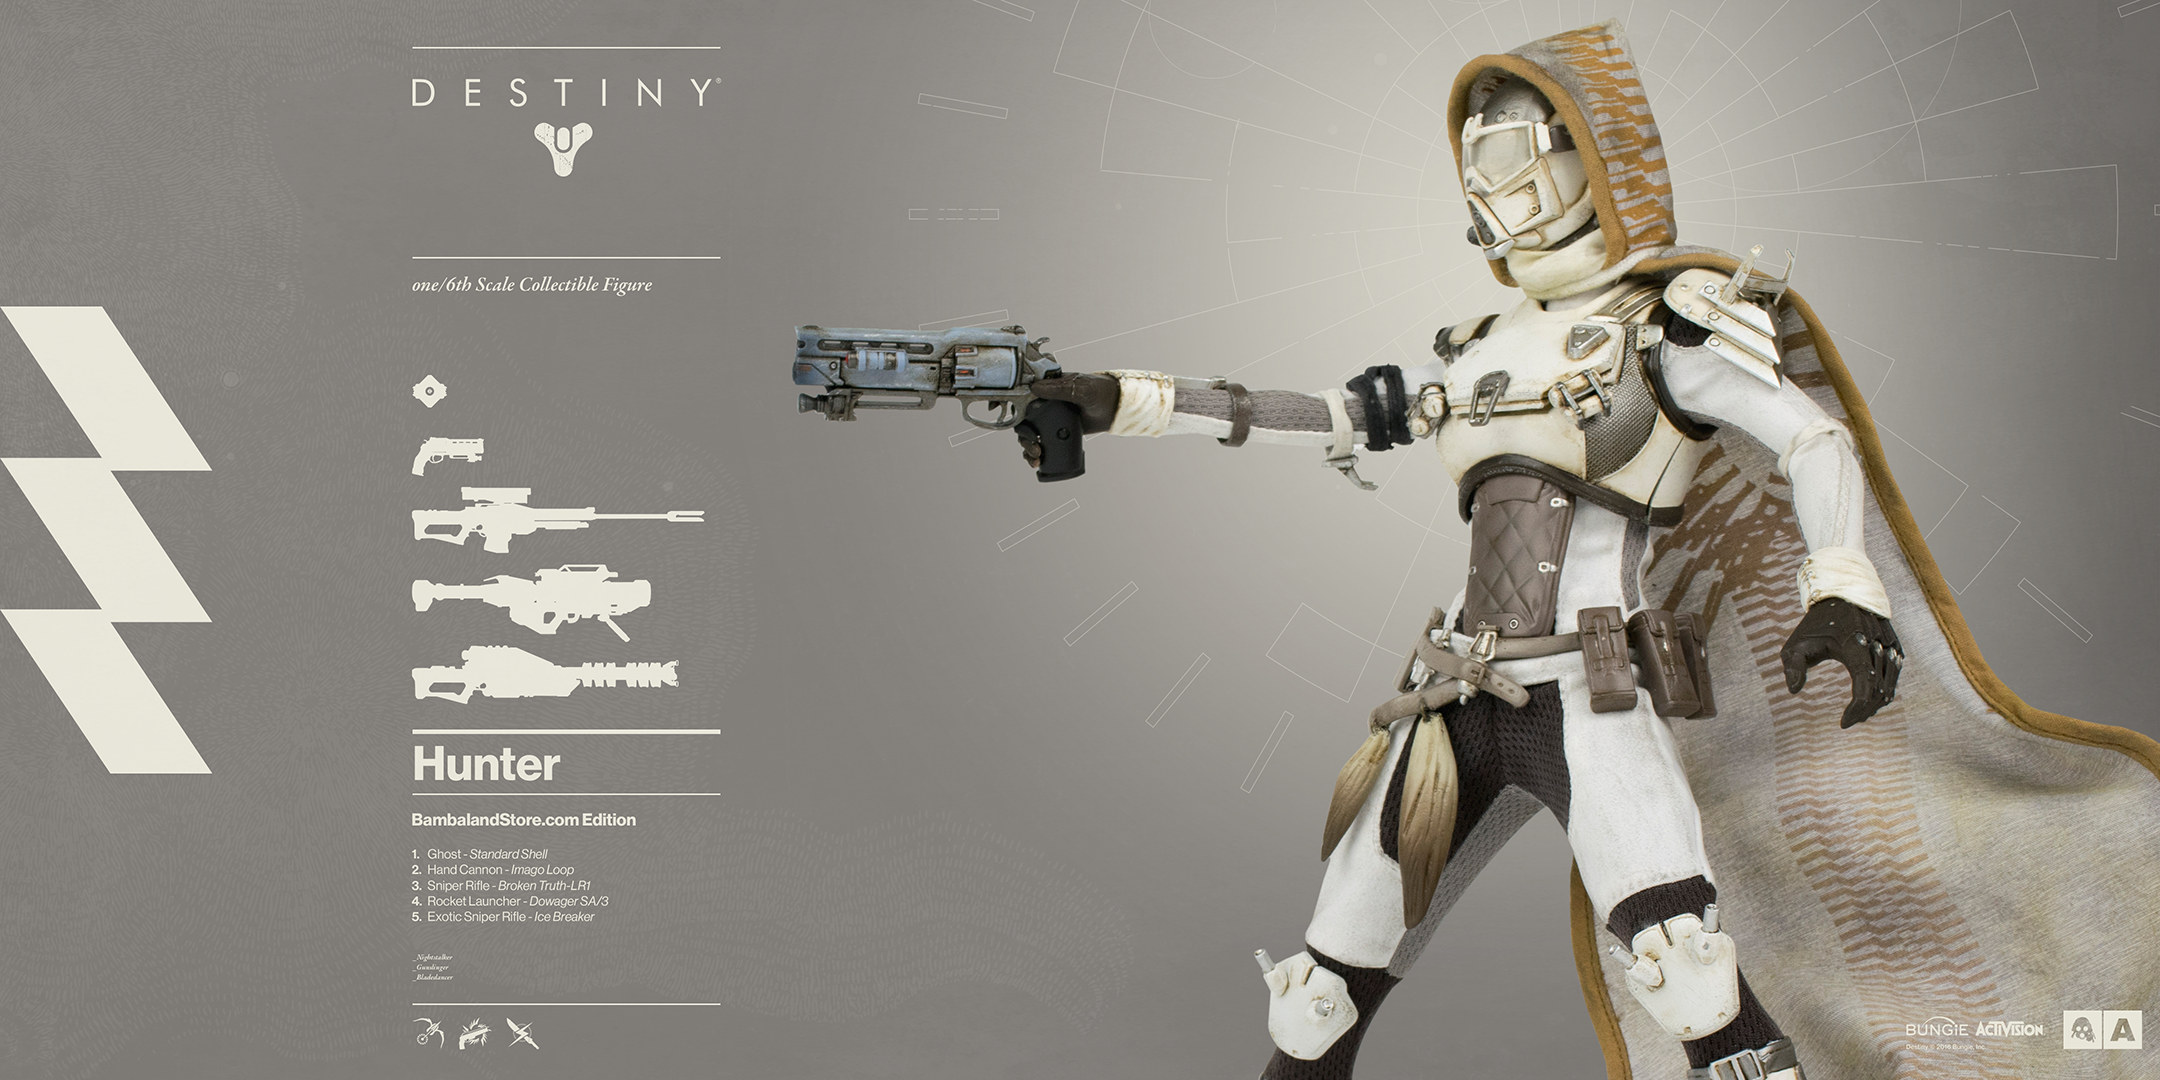 3A_Destiny_Hunter_BambalandStoreEdition_Landscape_Right_v002.png